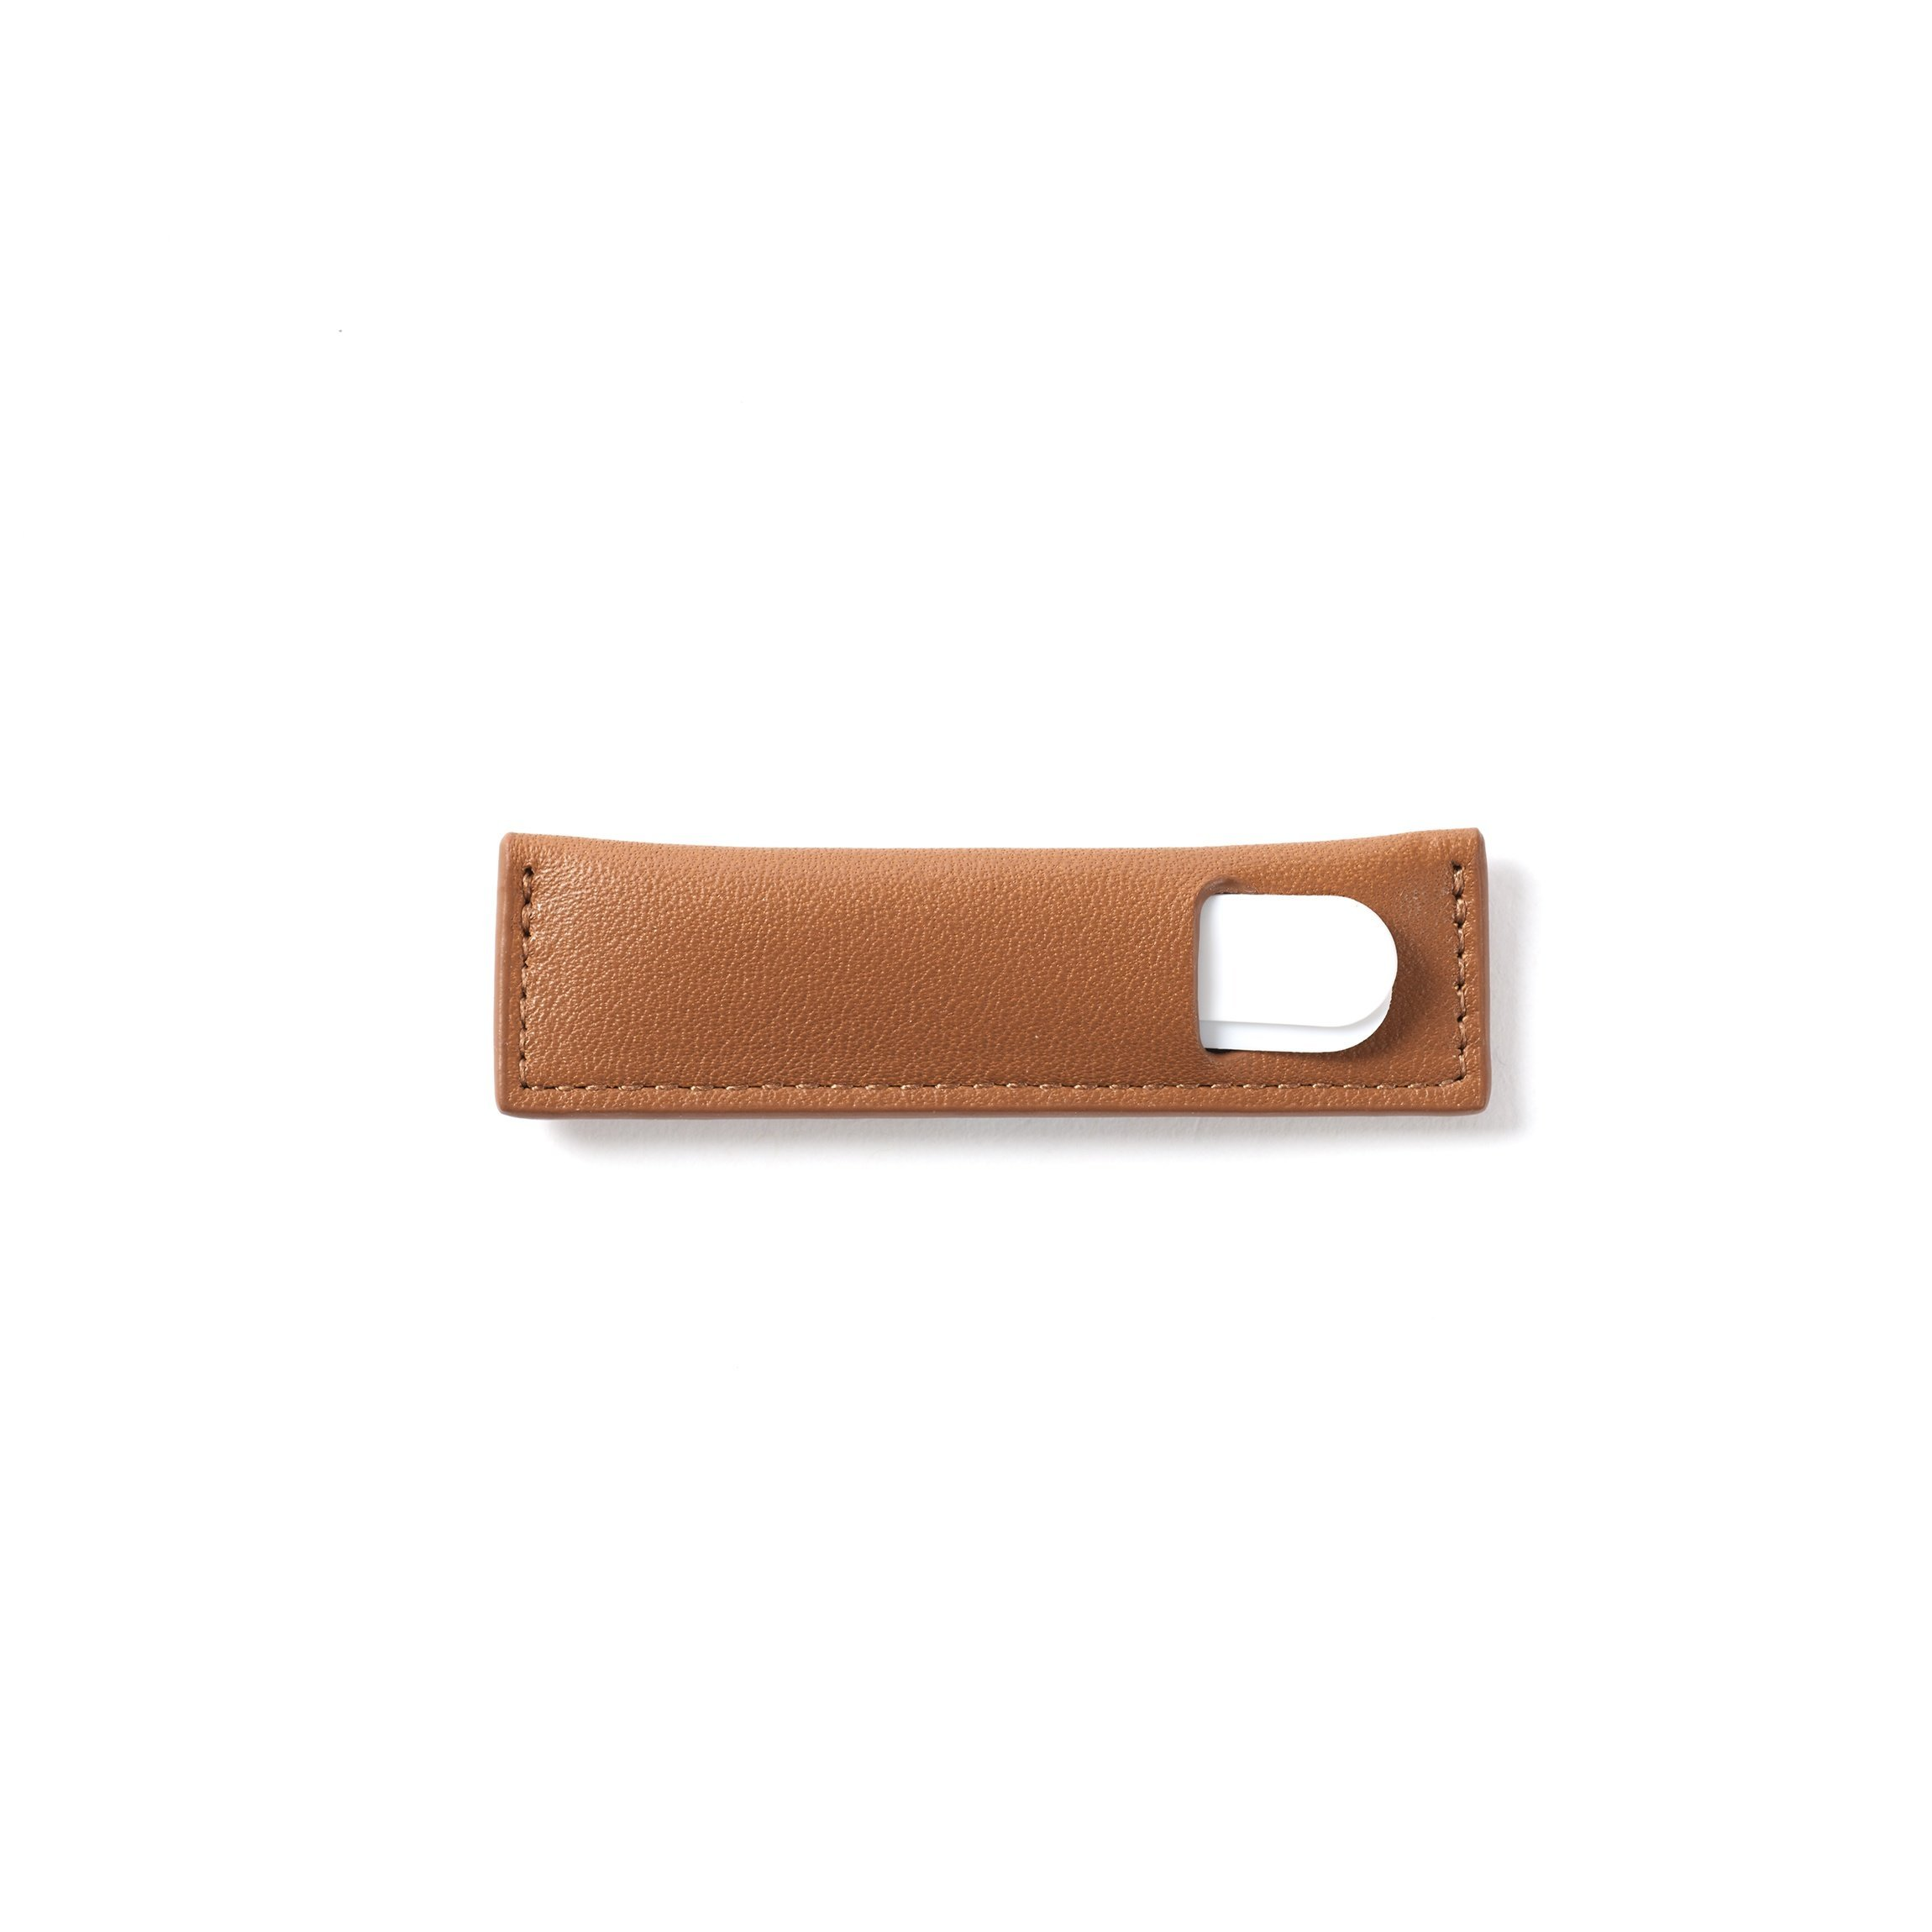 Collar Stay Case - Full Grain Leather - Cognac (brown)